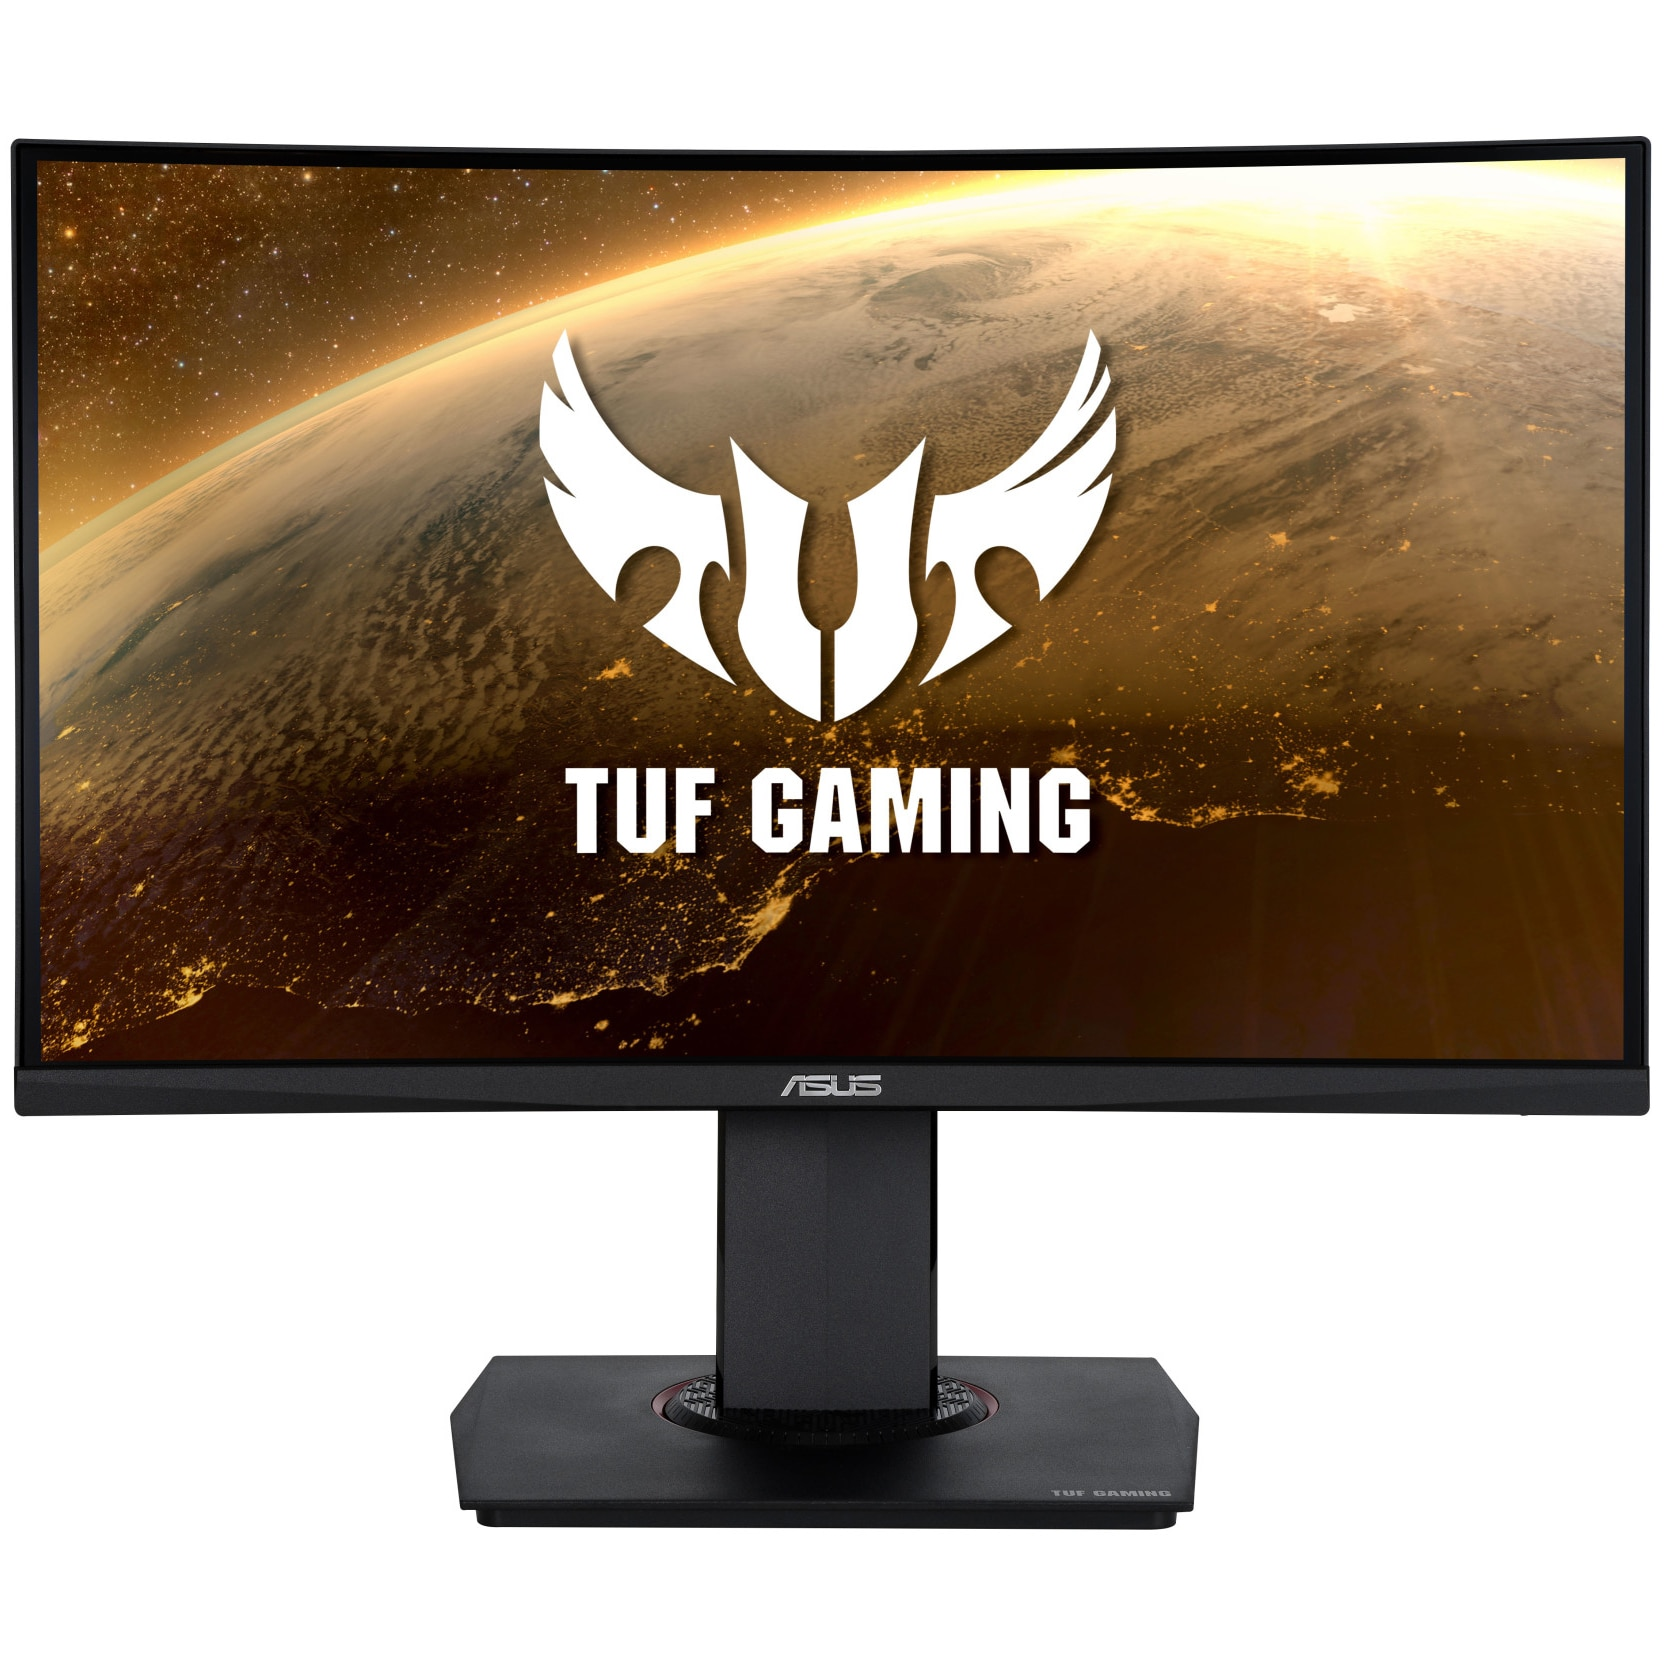 "Fotografie Monitor gaming curbat LED VA Asus TUF 23.6"", Full HD, Display Port, FreeSync, 144Hz, 1ms, Negru"